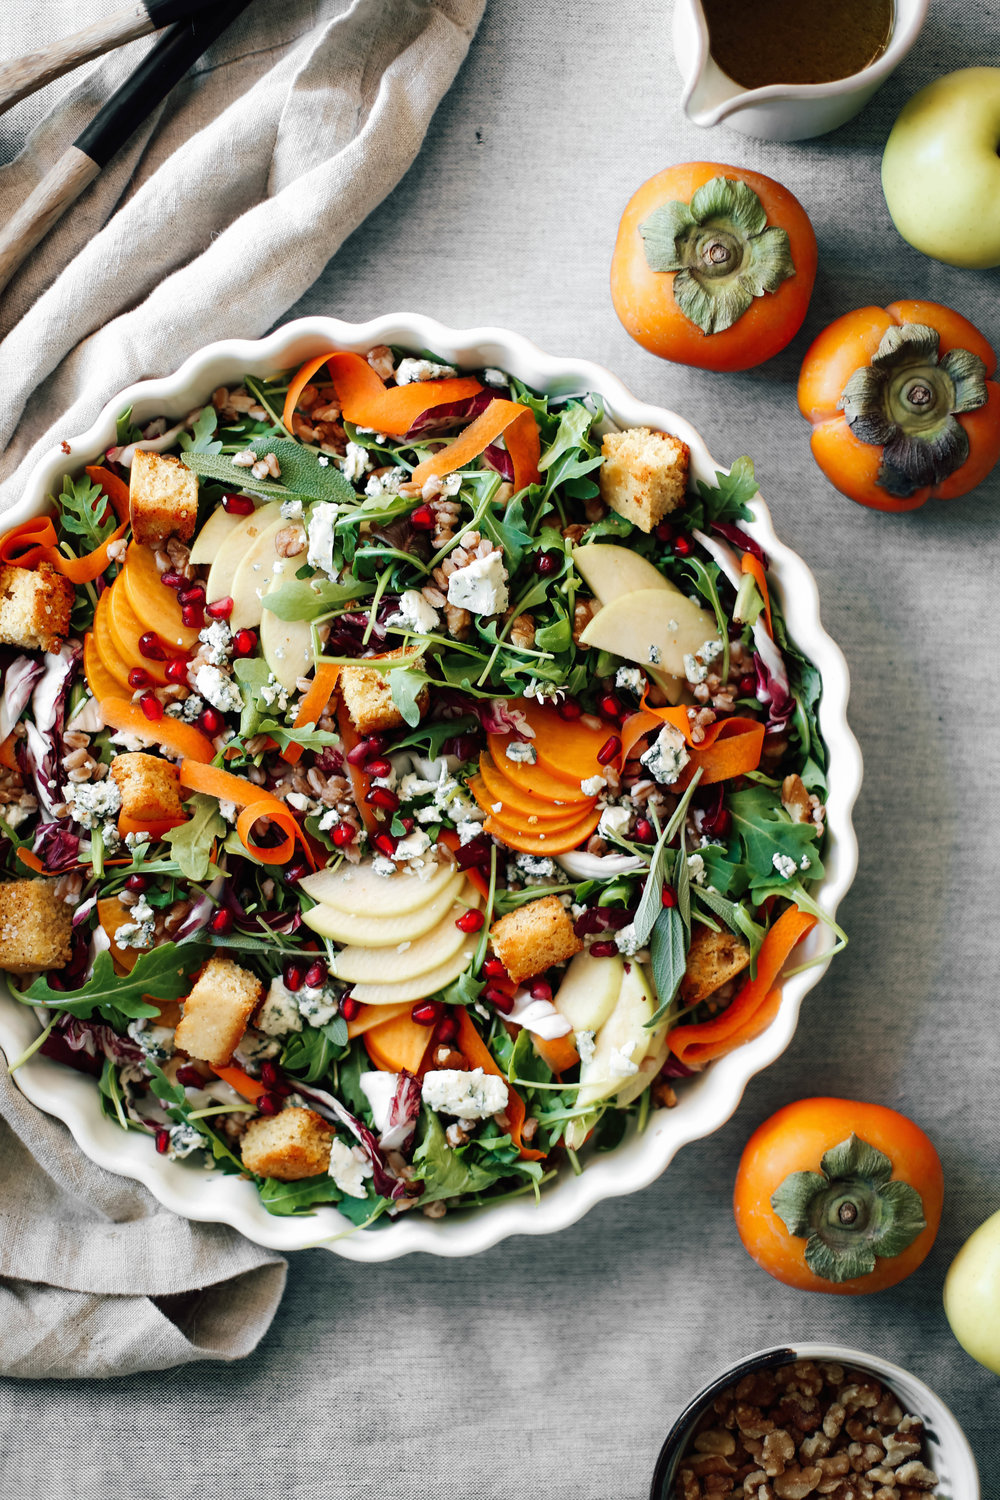 Apple and persimmon salad with chinese 5 spice cornbread croutons-5.jpg